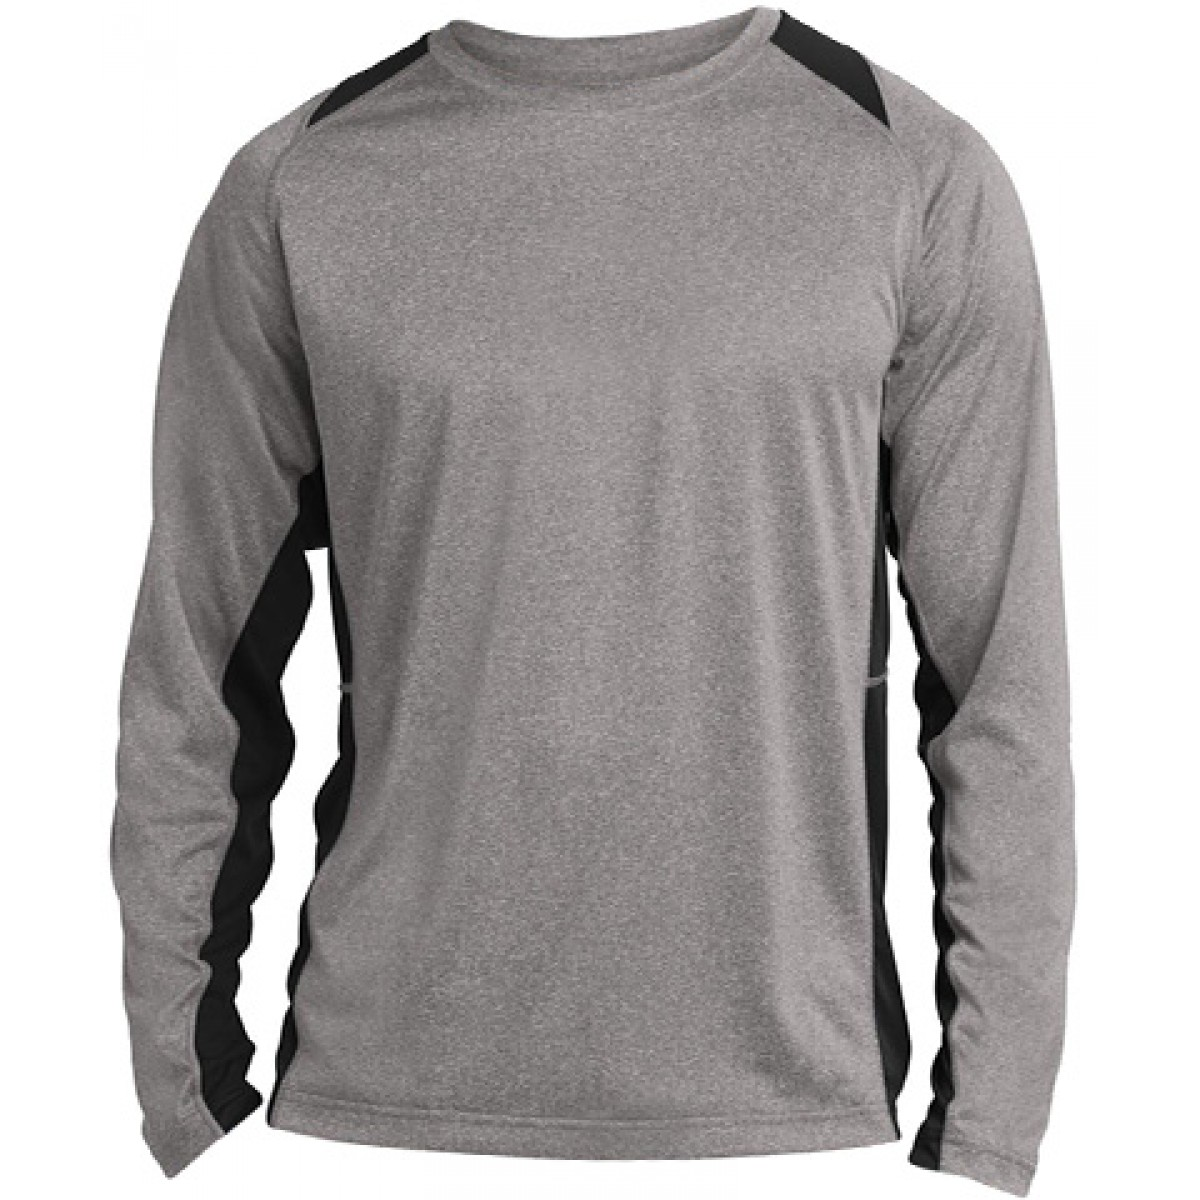 Long Sleeve Heather Colorblock Contender-Gray/Black-YM